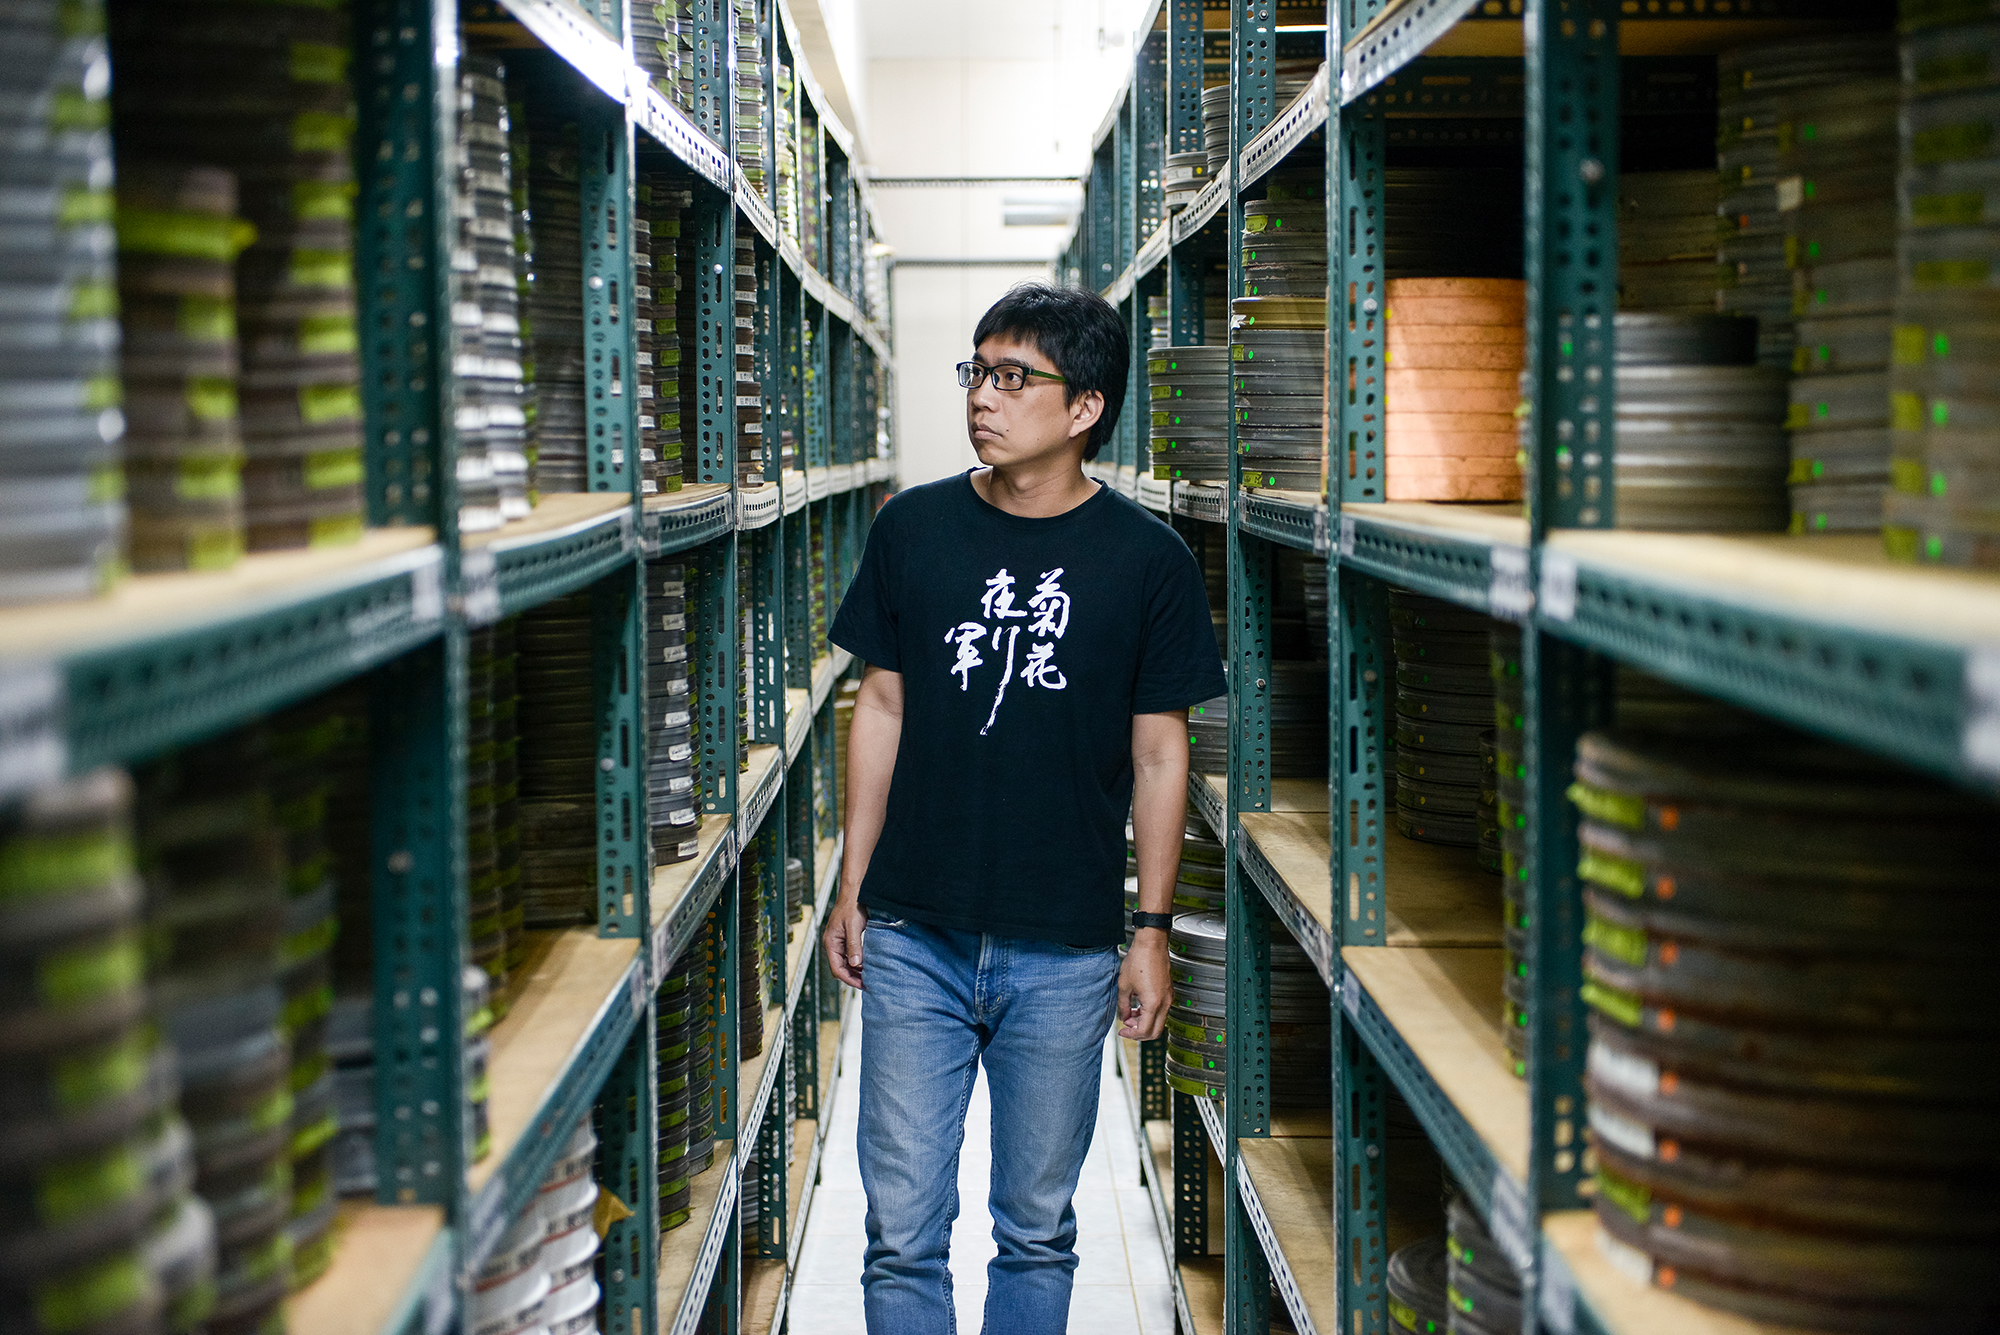 """For Wood Lin, program director of the Taiwan International Documentary Festival, """"reality"""" can have many faces, and documentary filmmakers each approach those realities from their own perspective."""